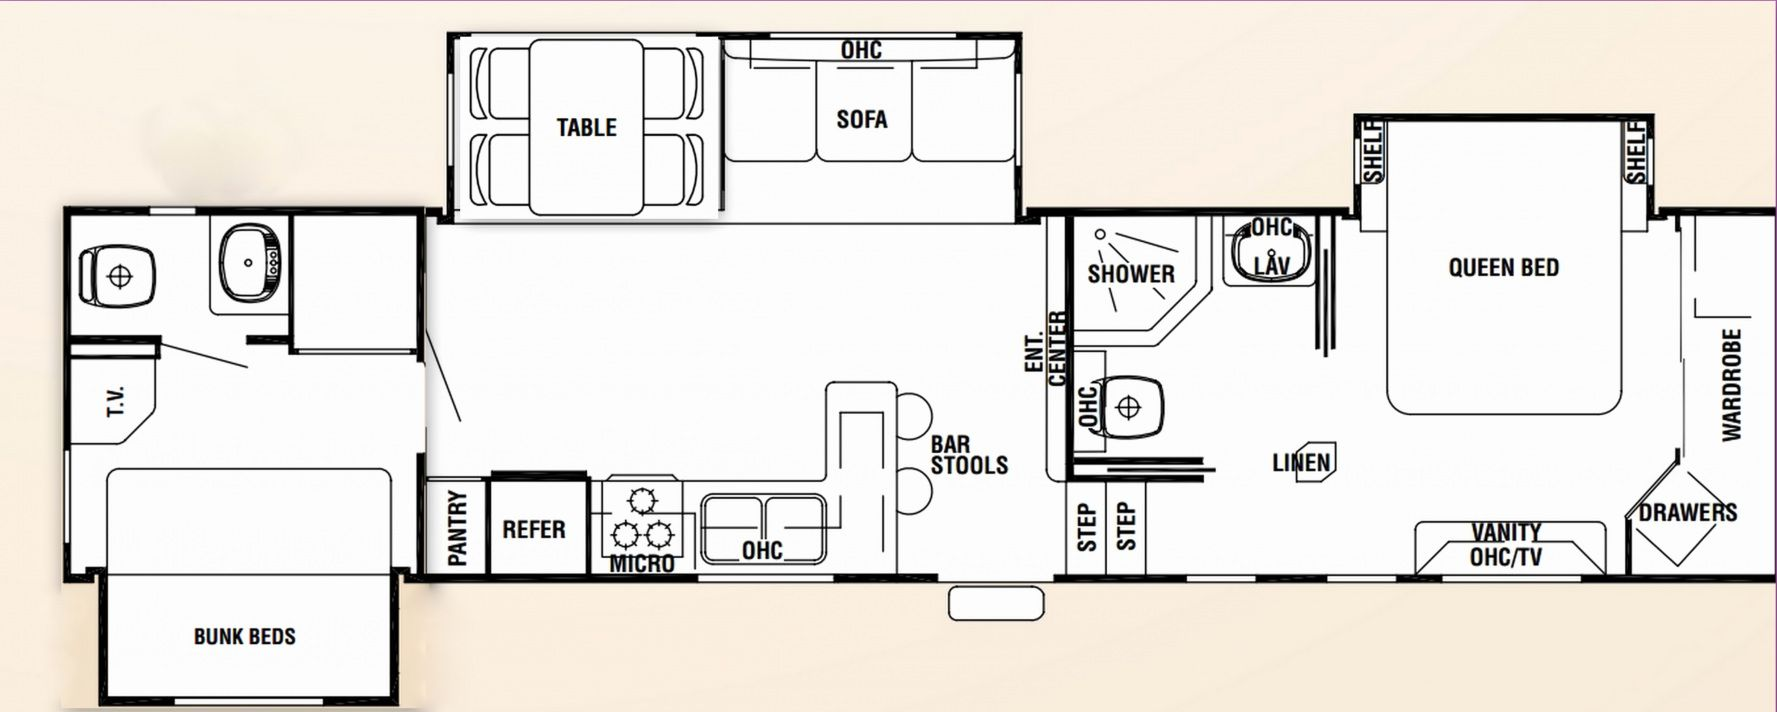 70+ Travel Trailers with Bunk Beds Floor Plans Master